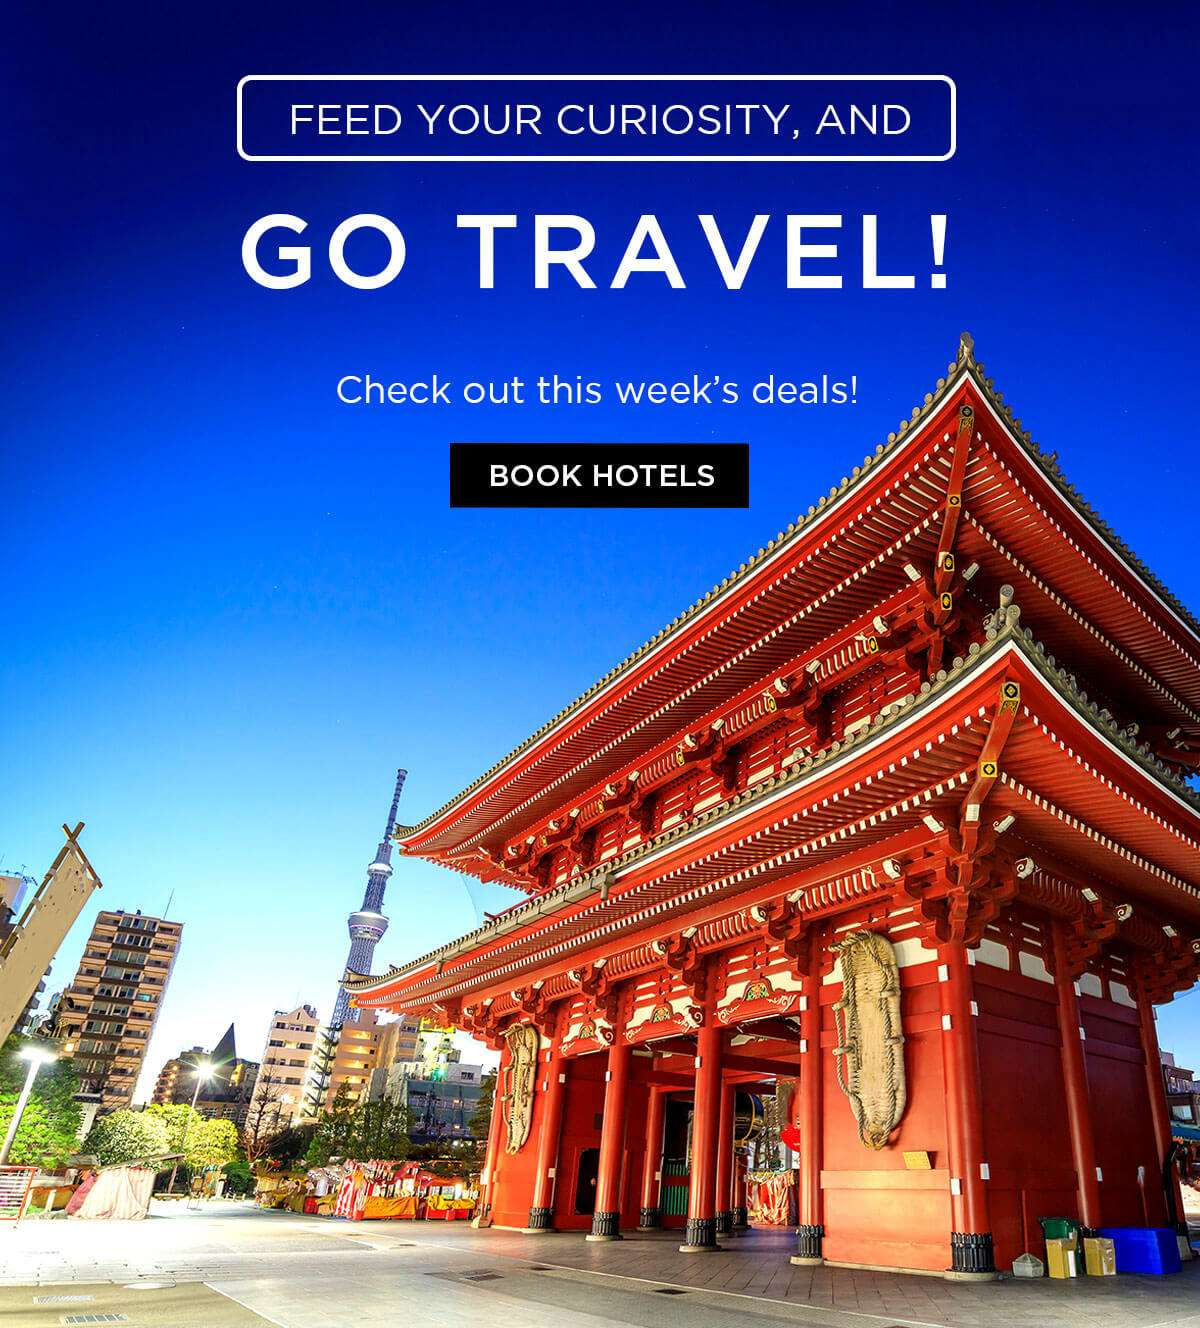 Feed your curiosity and go travel! Check out this week's deals!